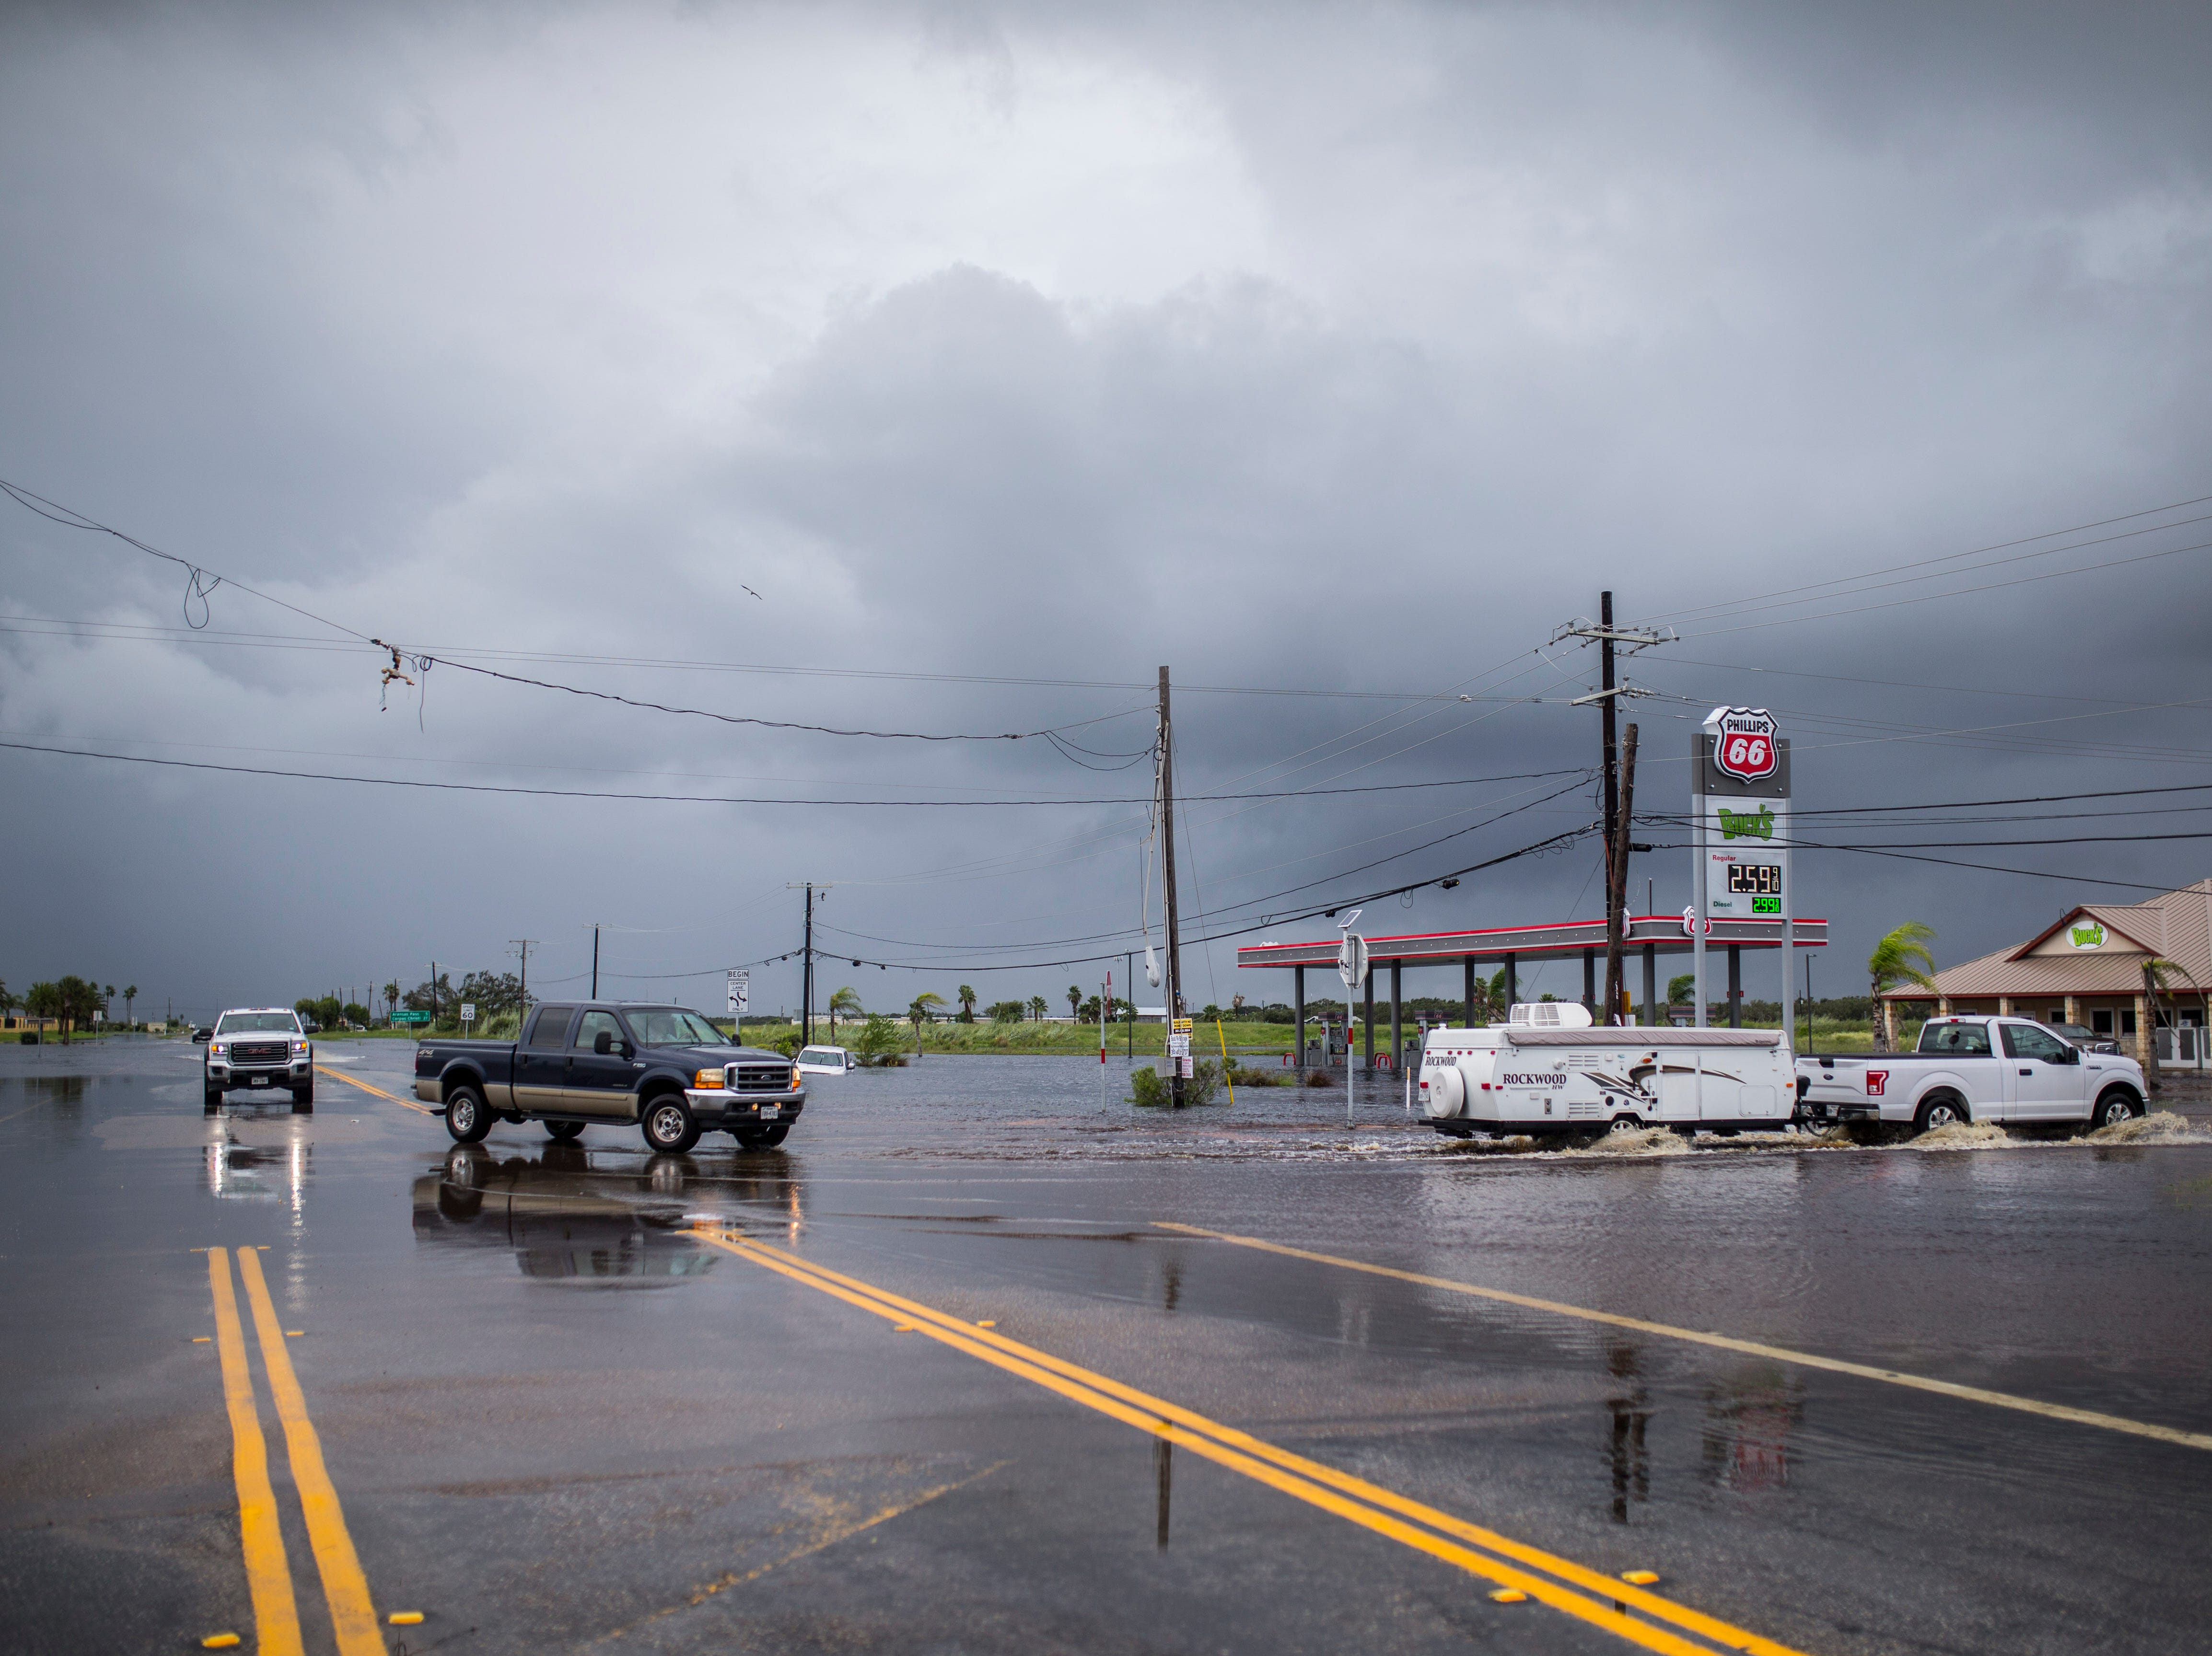 Vehicles drive through high water on Business State Highway 35 and State Highway 188 between Rockport and Aransas Pass on Saturday, Sept. 15, 2018.